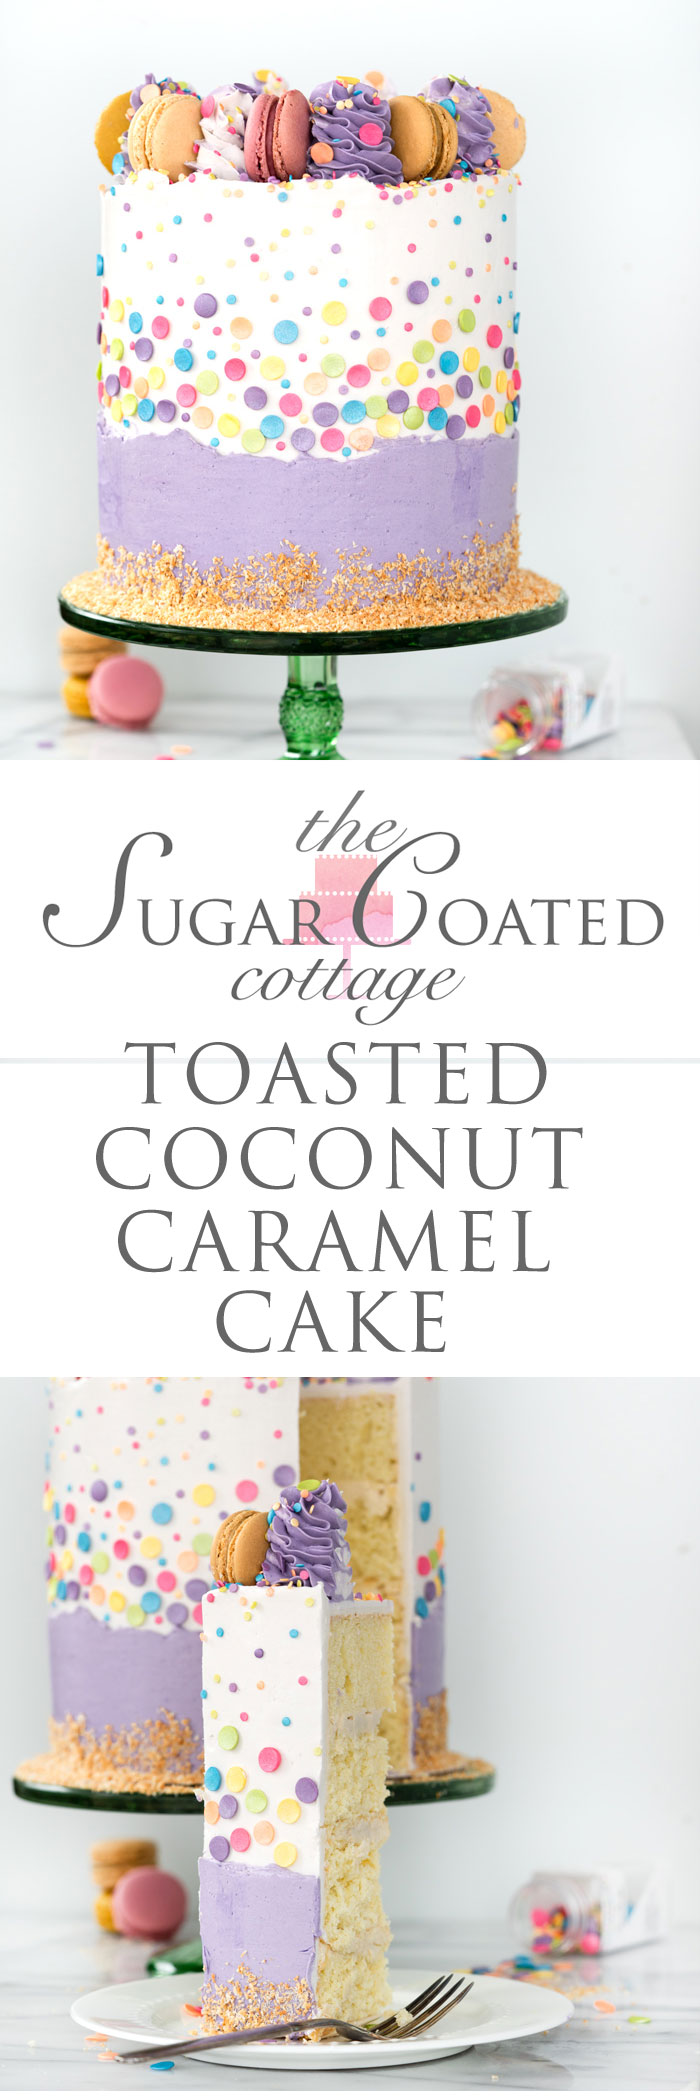 Toasted Caramel Coconut Cake Recipe. | thesugarcoatedcottage.com #cake #coconutcake #cakedecorating #buttercream #layercake #caramel